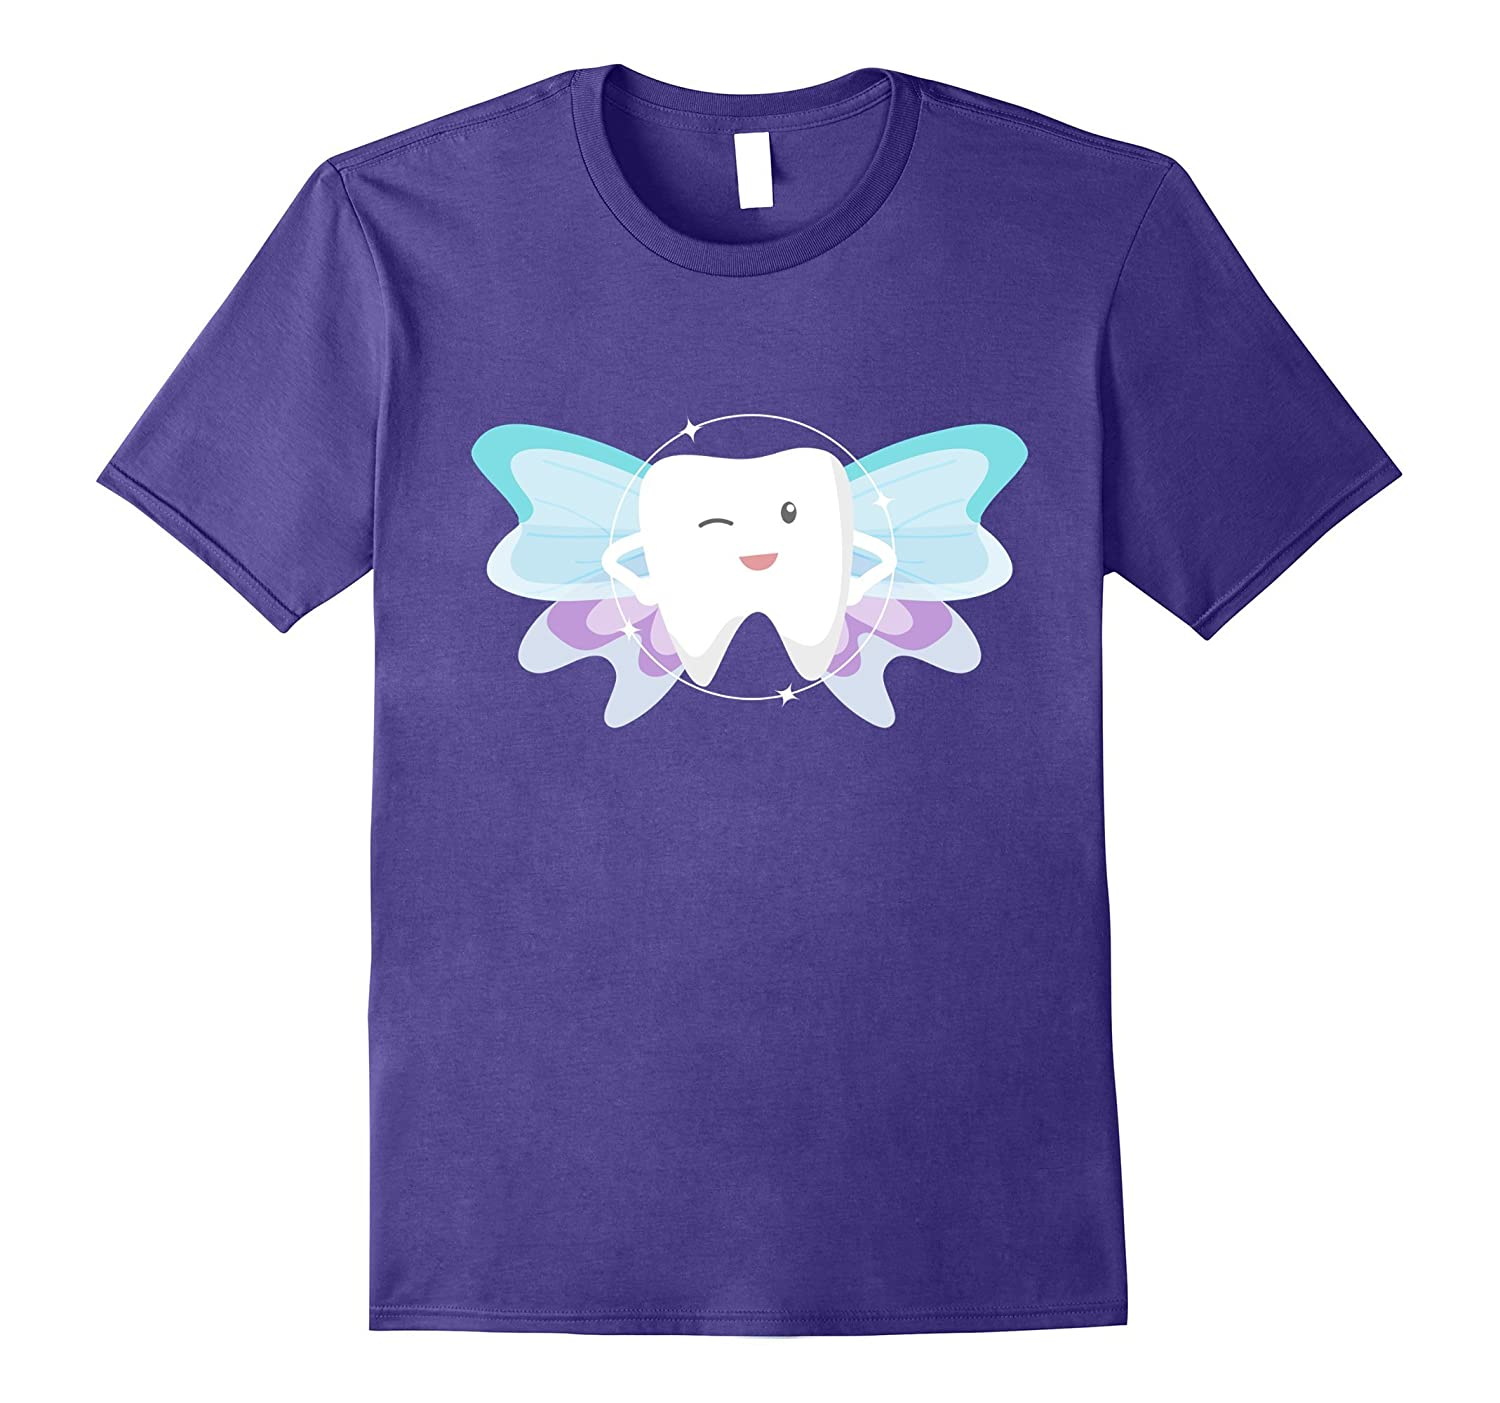 Kids tooth fairy godmother fairy tales novelty t shirt rt for Tooth fairy t shirt